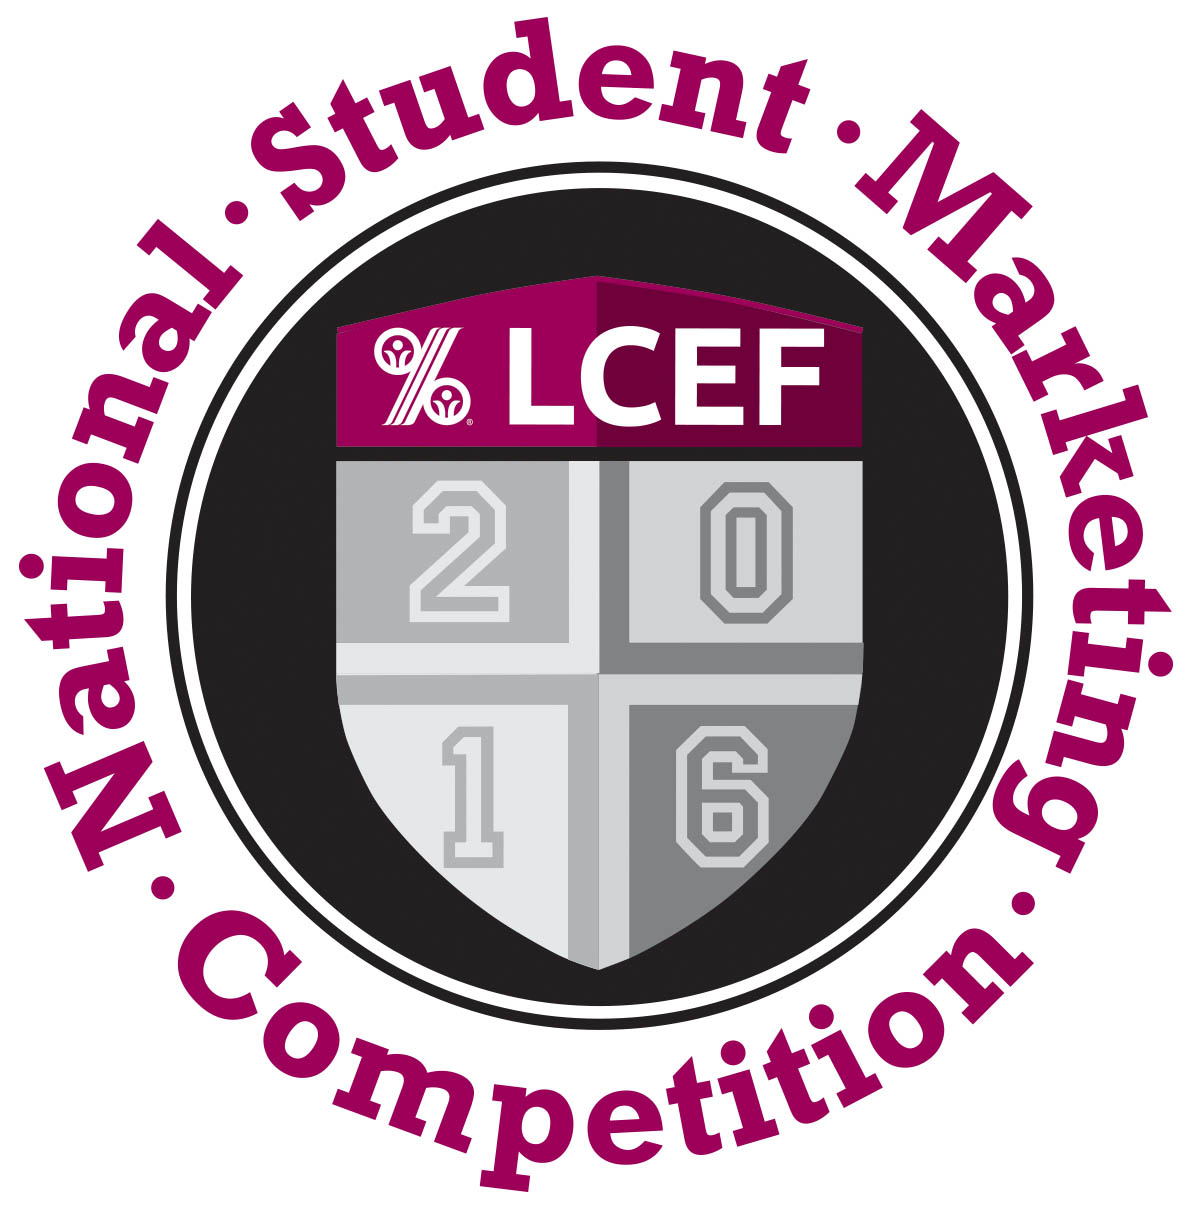 2016 National Student Marketing Competition